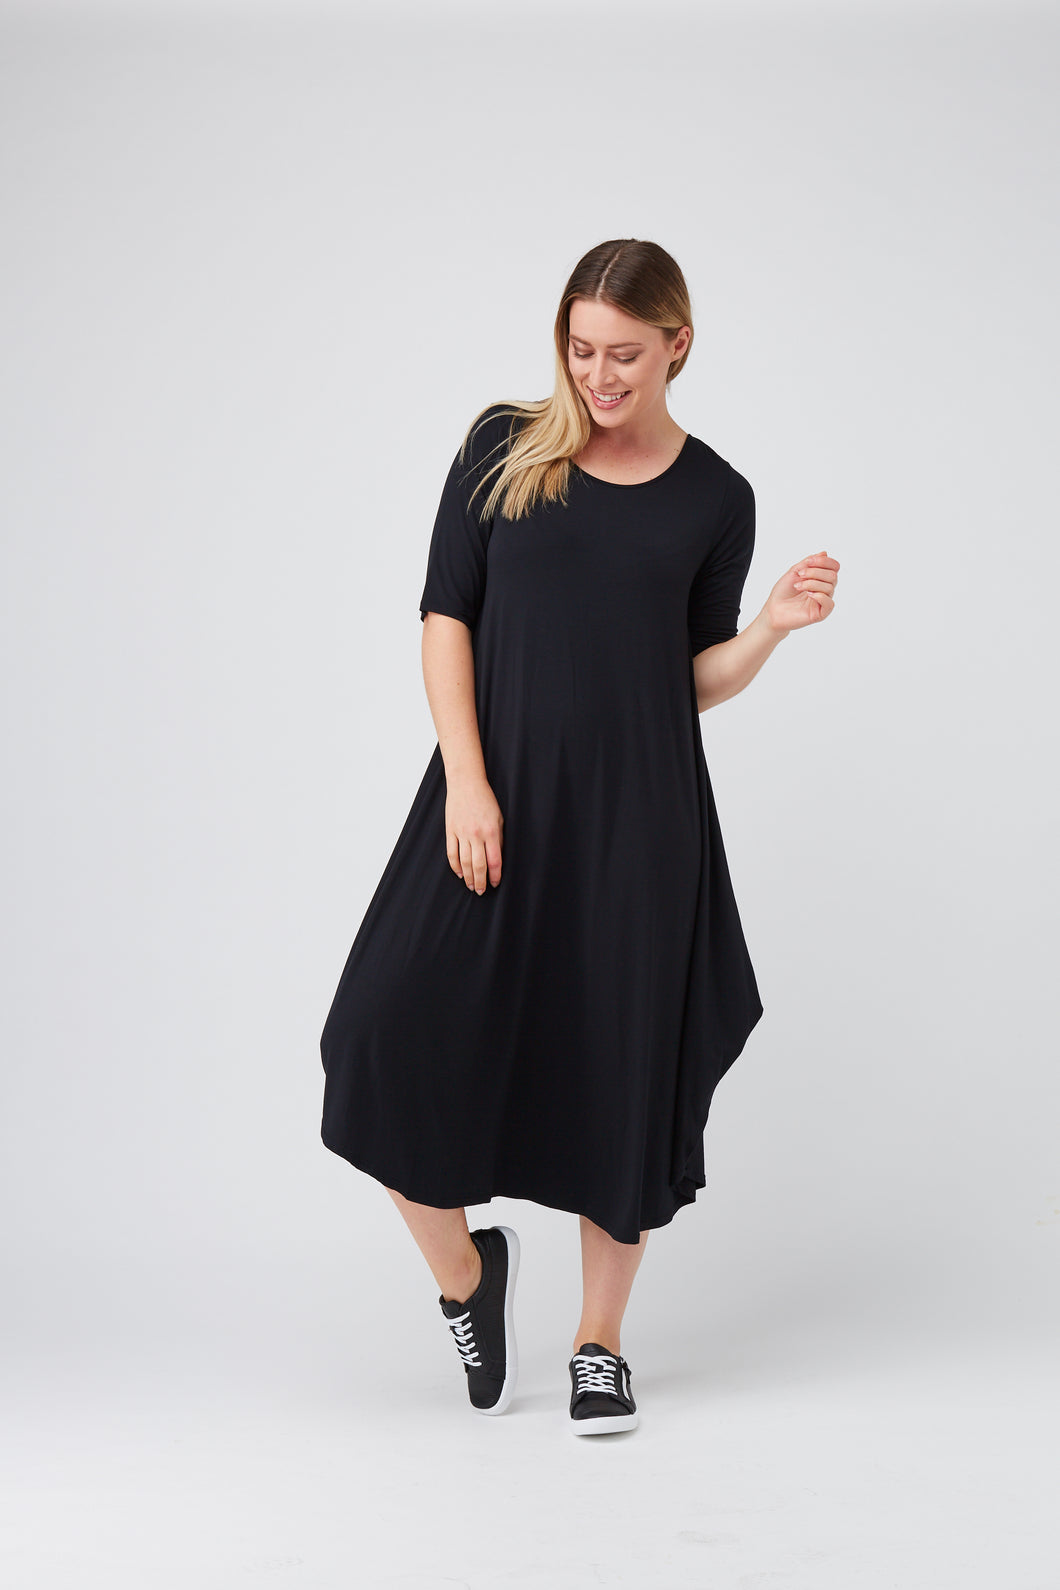 Tani Black Orignial Tri Dress - Sizes 10, 12, 14.